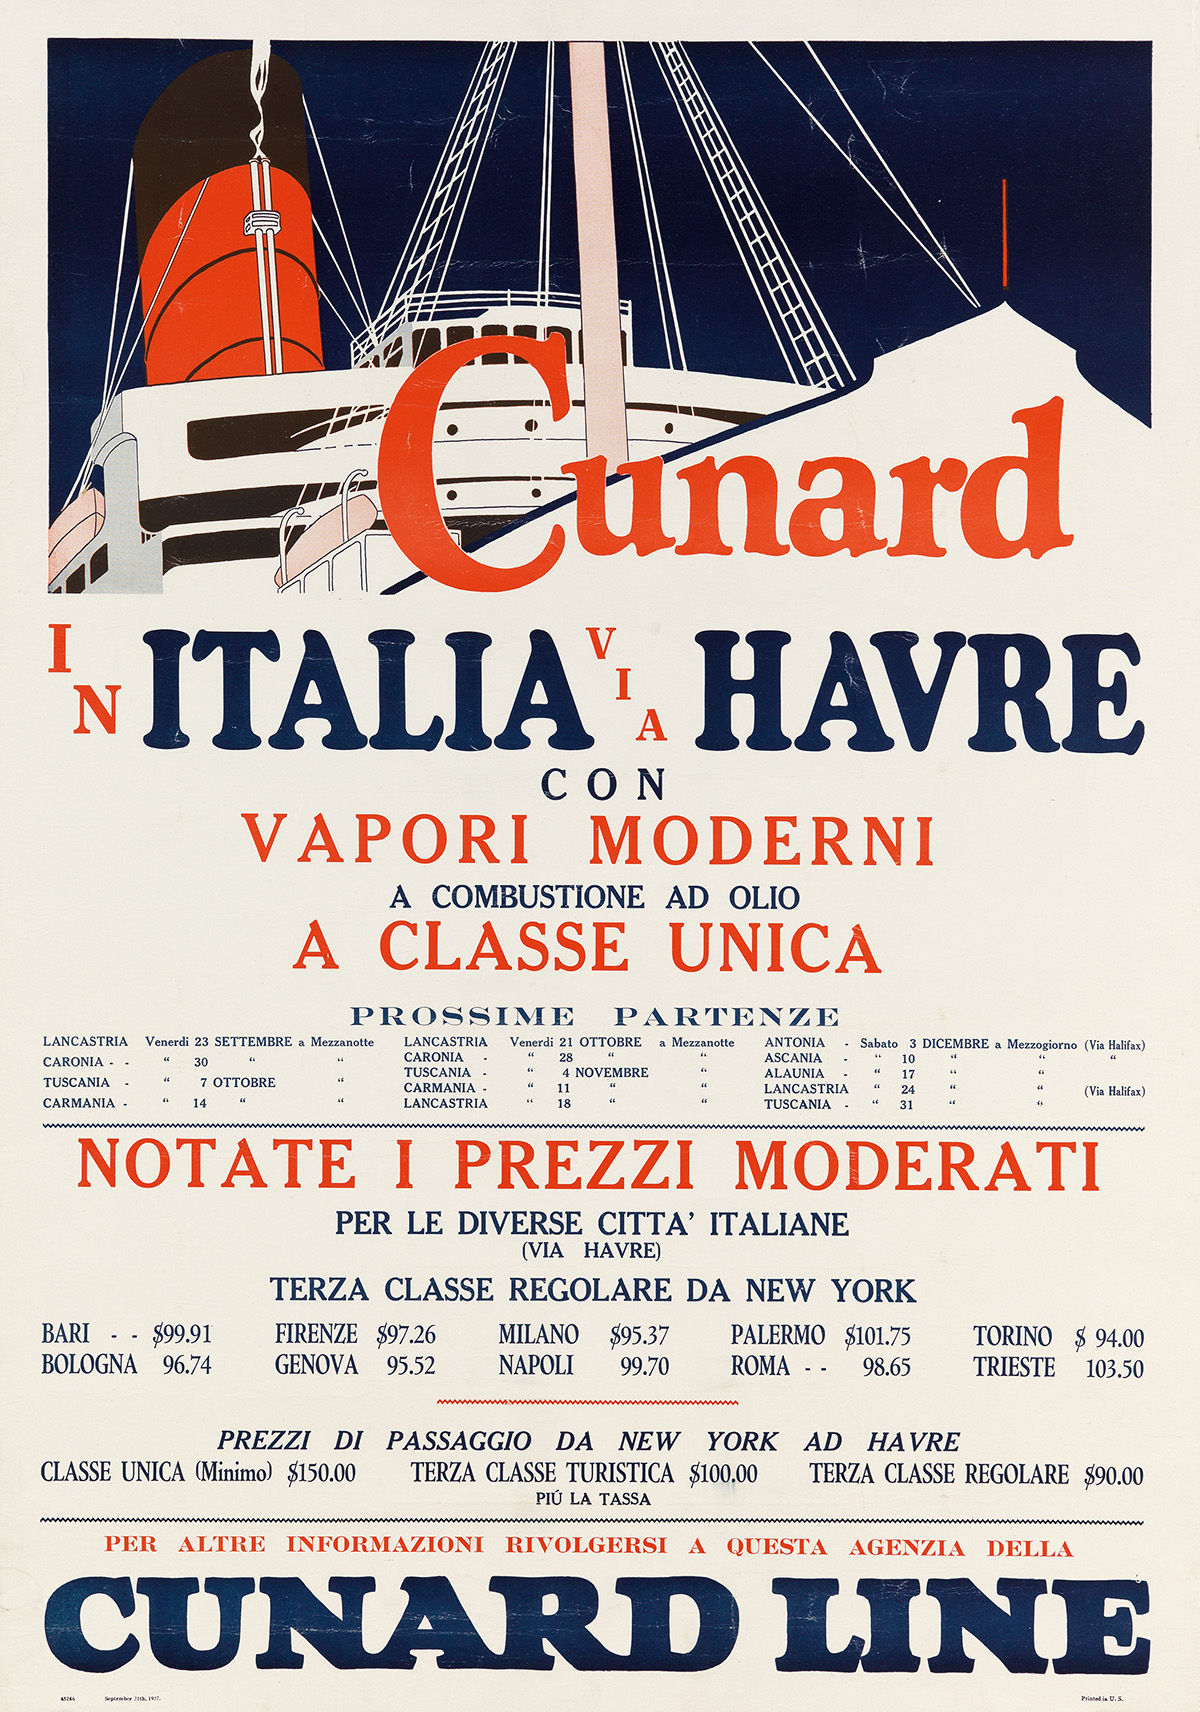 DESIGNERS-UNKNOWN-CUNARD-LINE-Group-of-4-posters-1927-Each-approximately-28x20-inches-71x50-cm-Uniz--Co-New-York